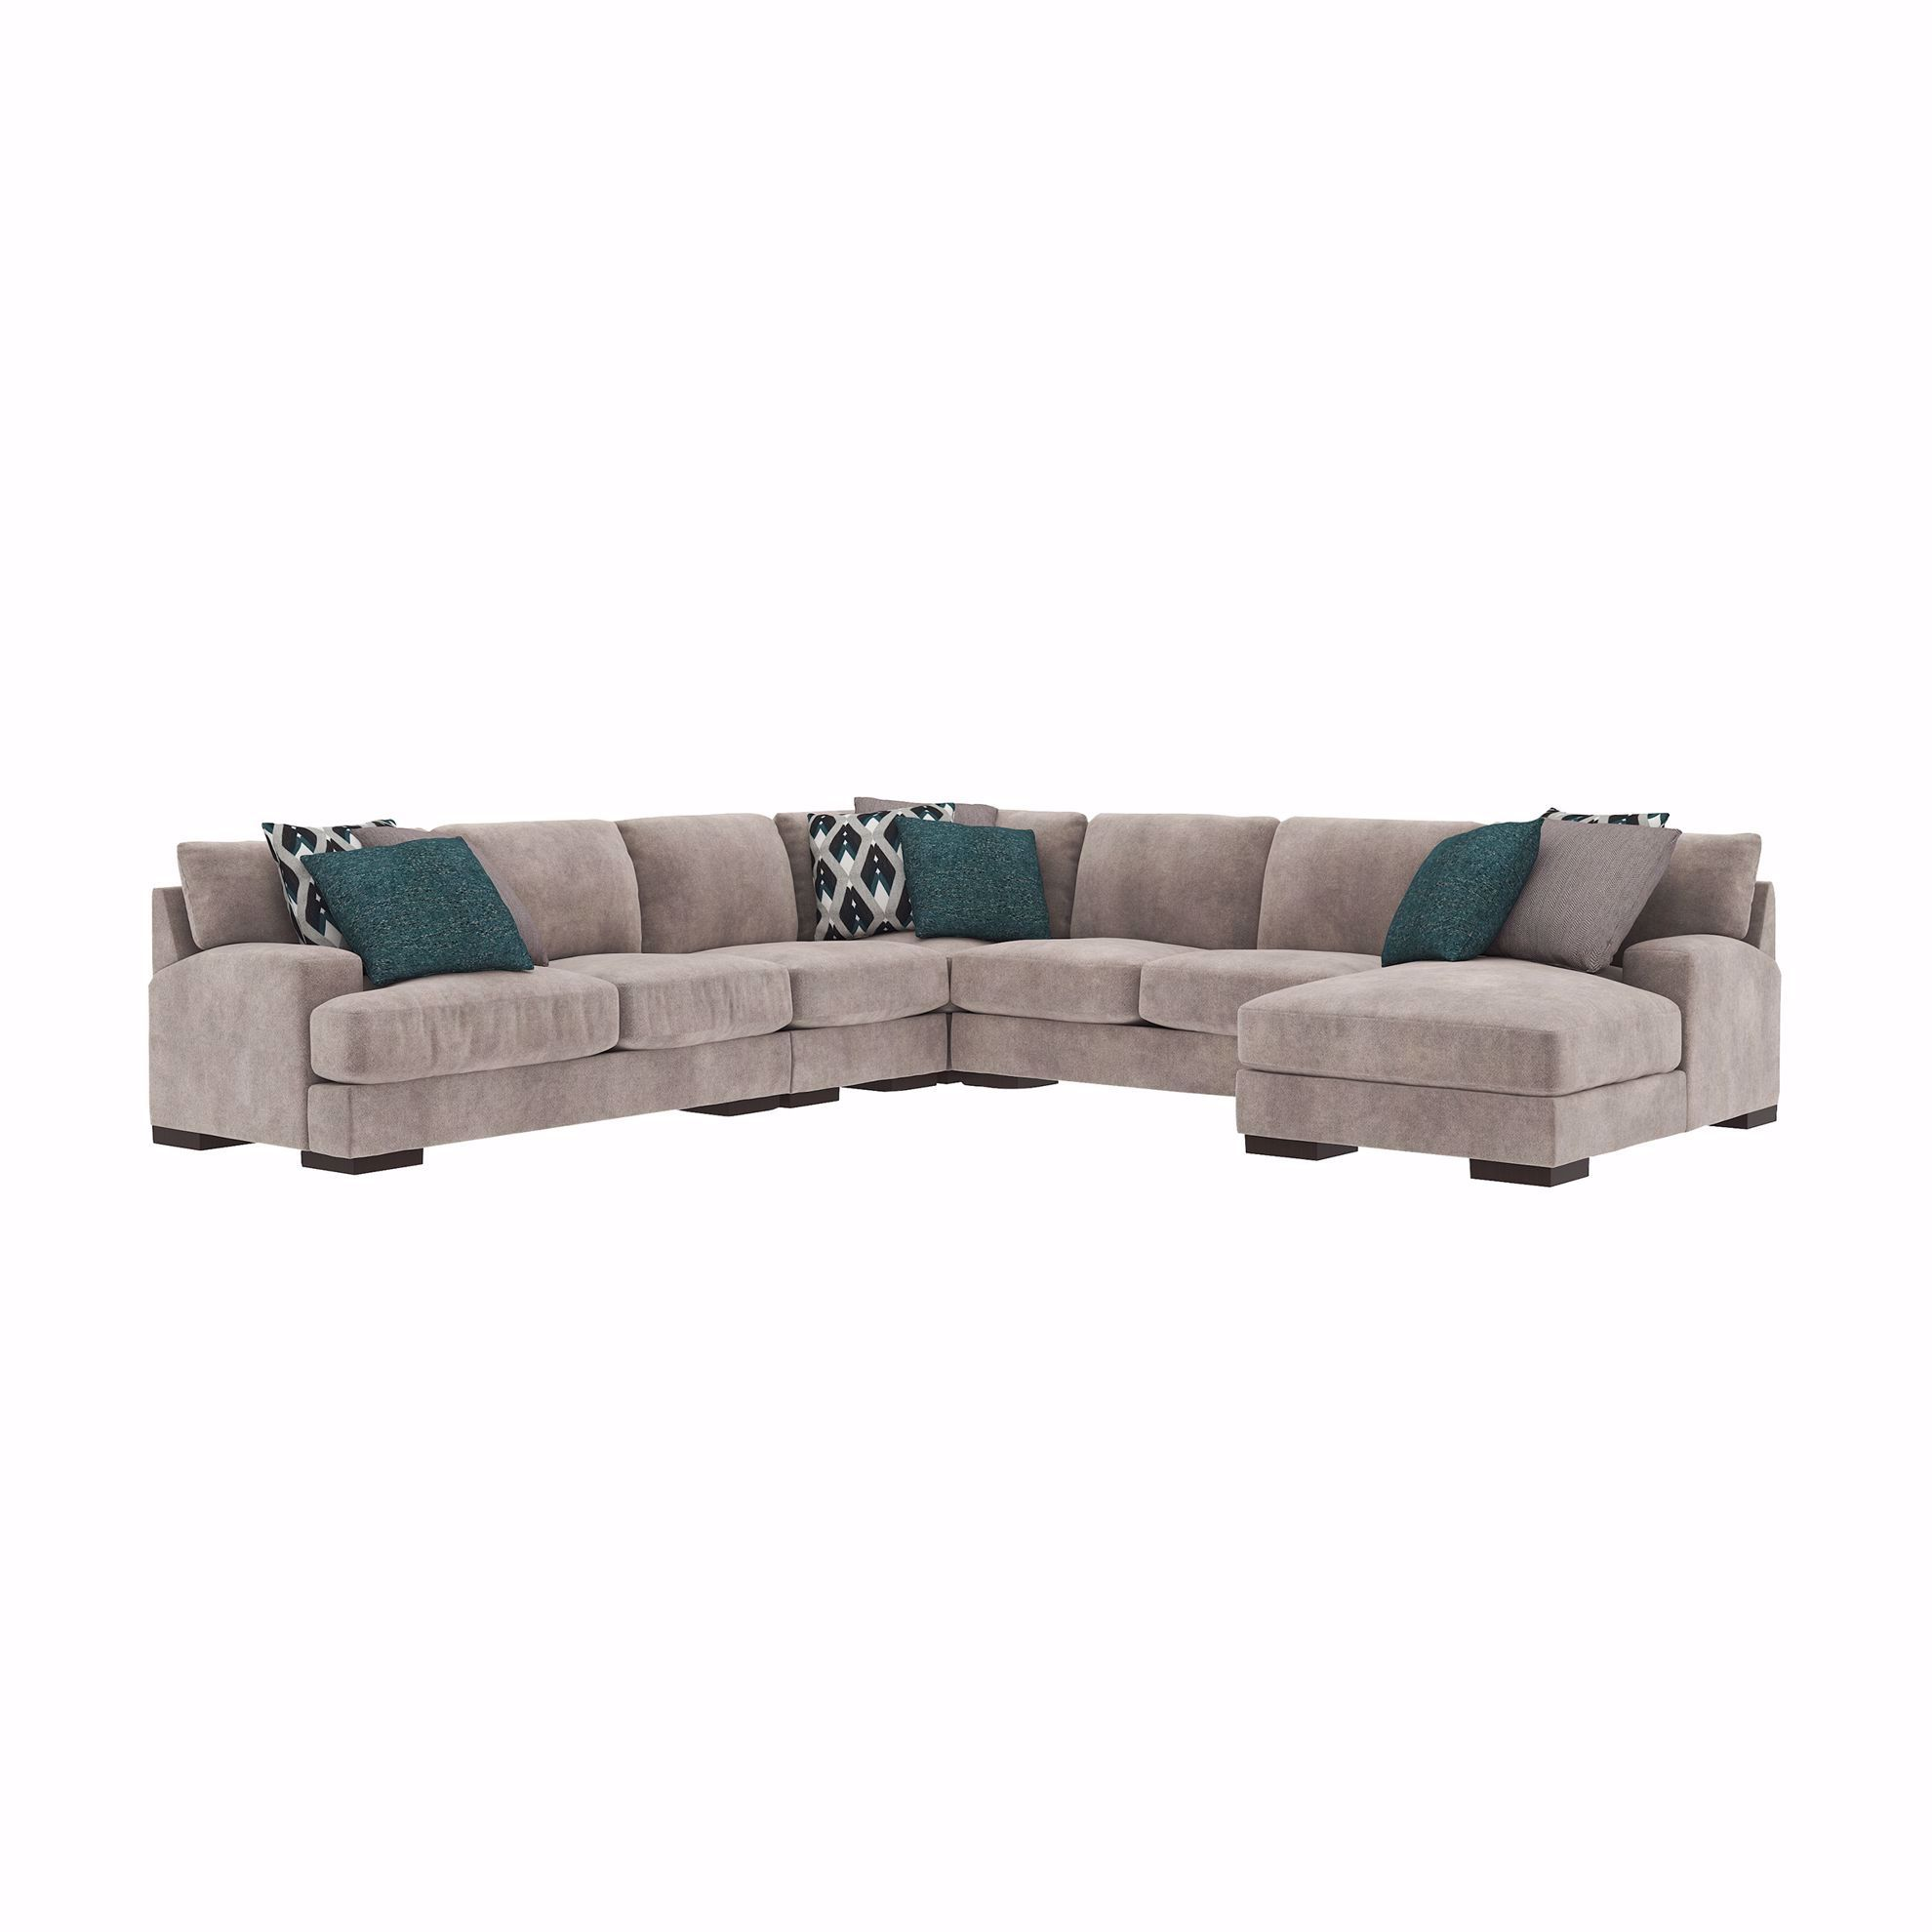 Picture of Bardarson Silver 5-Piece Sectional